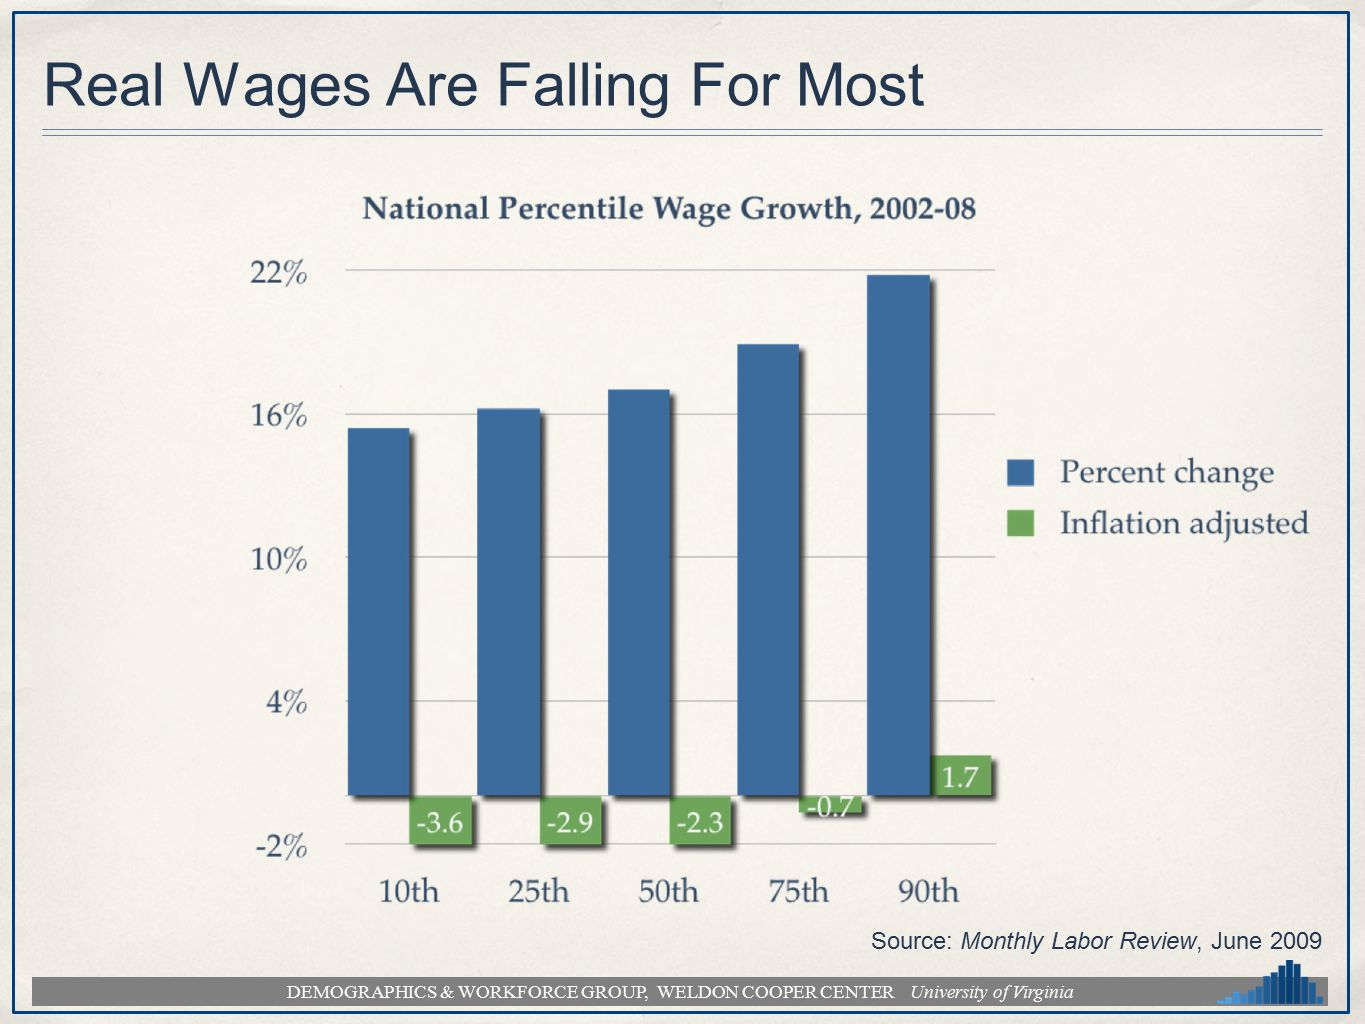 DEMOGRAPHICS & WORKFORCE GROUP, WELDON COOPER CENTER University of Virginia Real Wages Are Falling For Most Source: Monthly Labor Review, June 2009